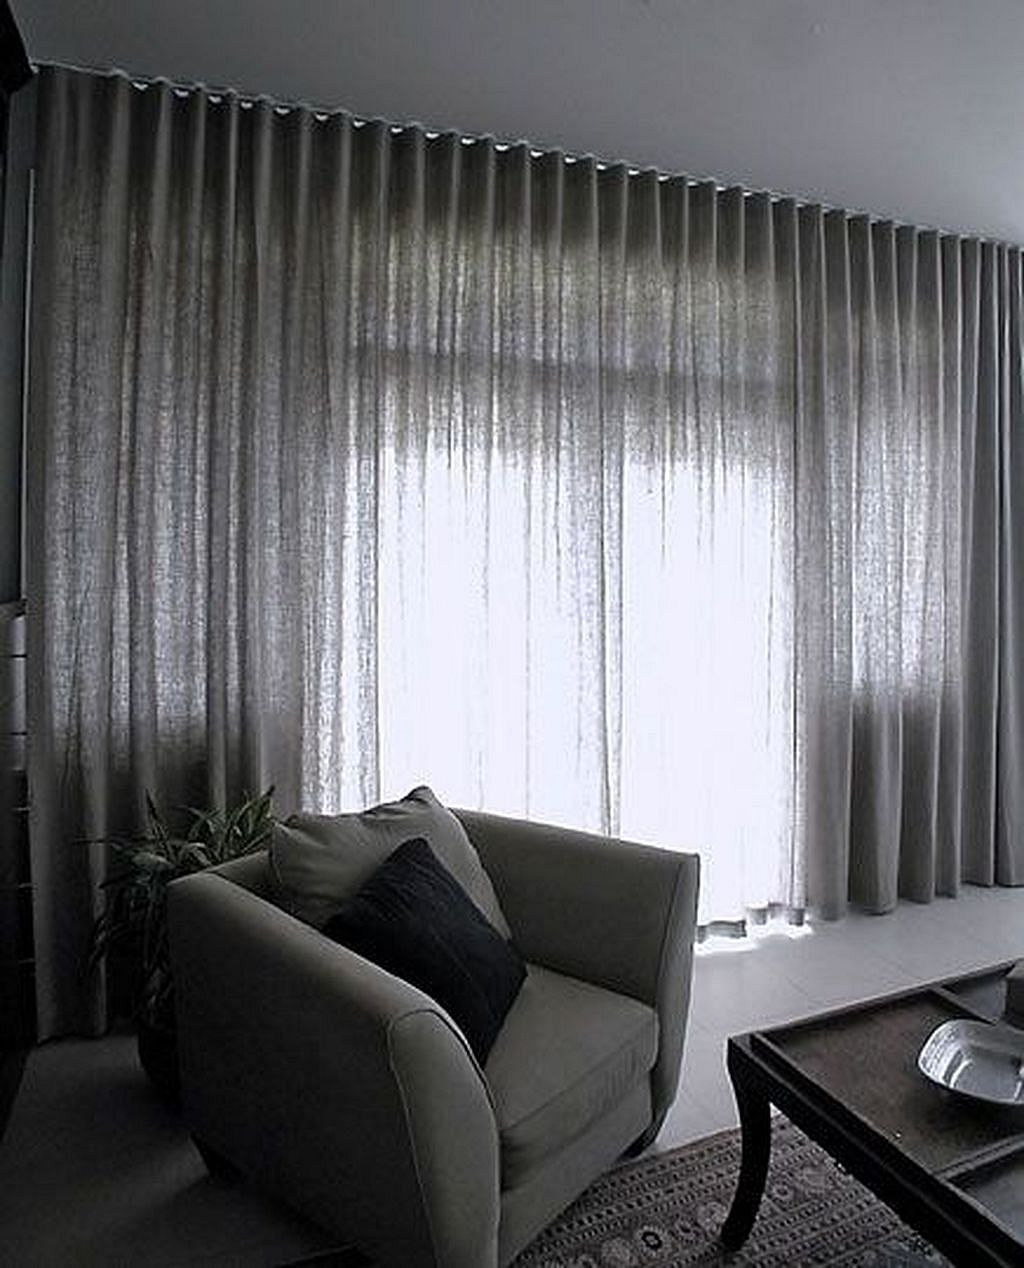 Great 30 Modern Curtain For Your Living Room Ideas Https Pinarchitecture Com 30 Modern Curtain For Home Curtains Curtains Living Room Contemporary Curtains Contemporary living room curtains